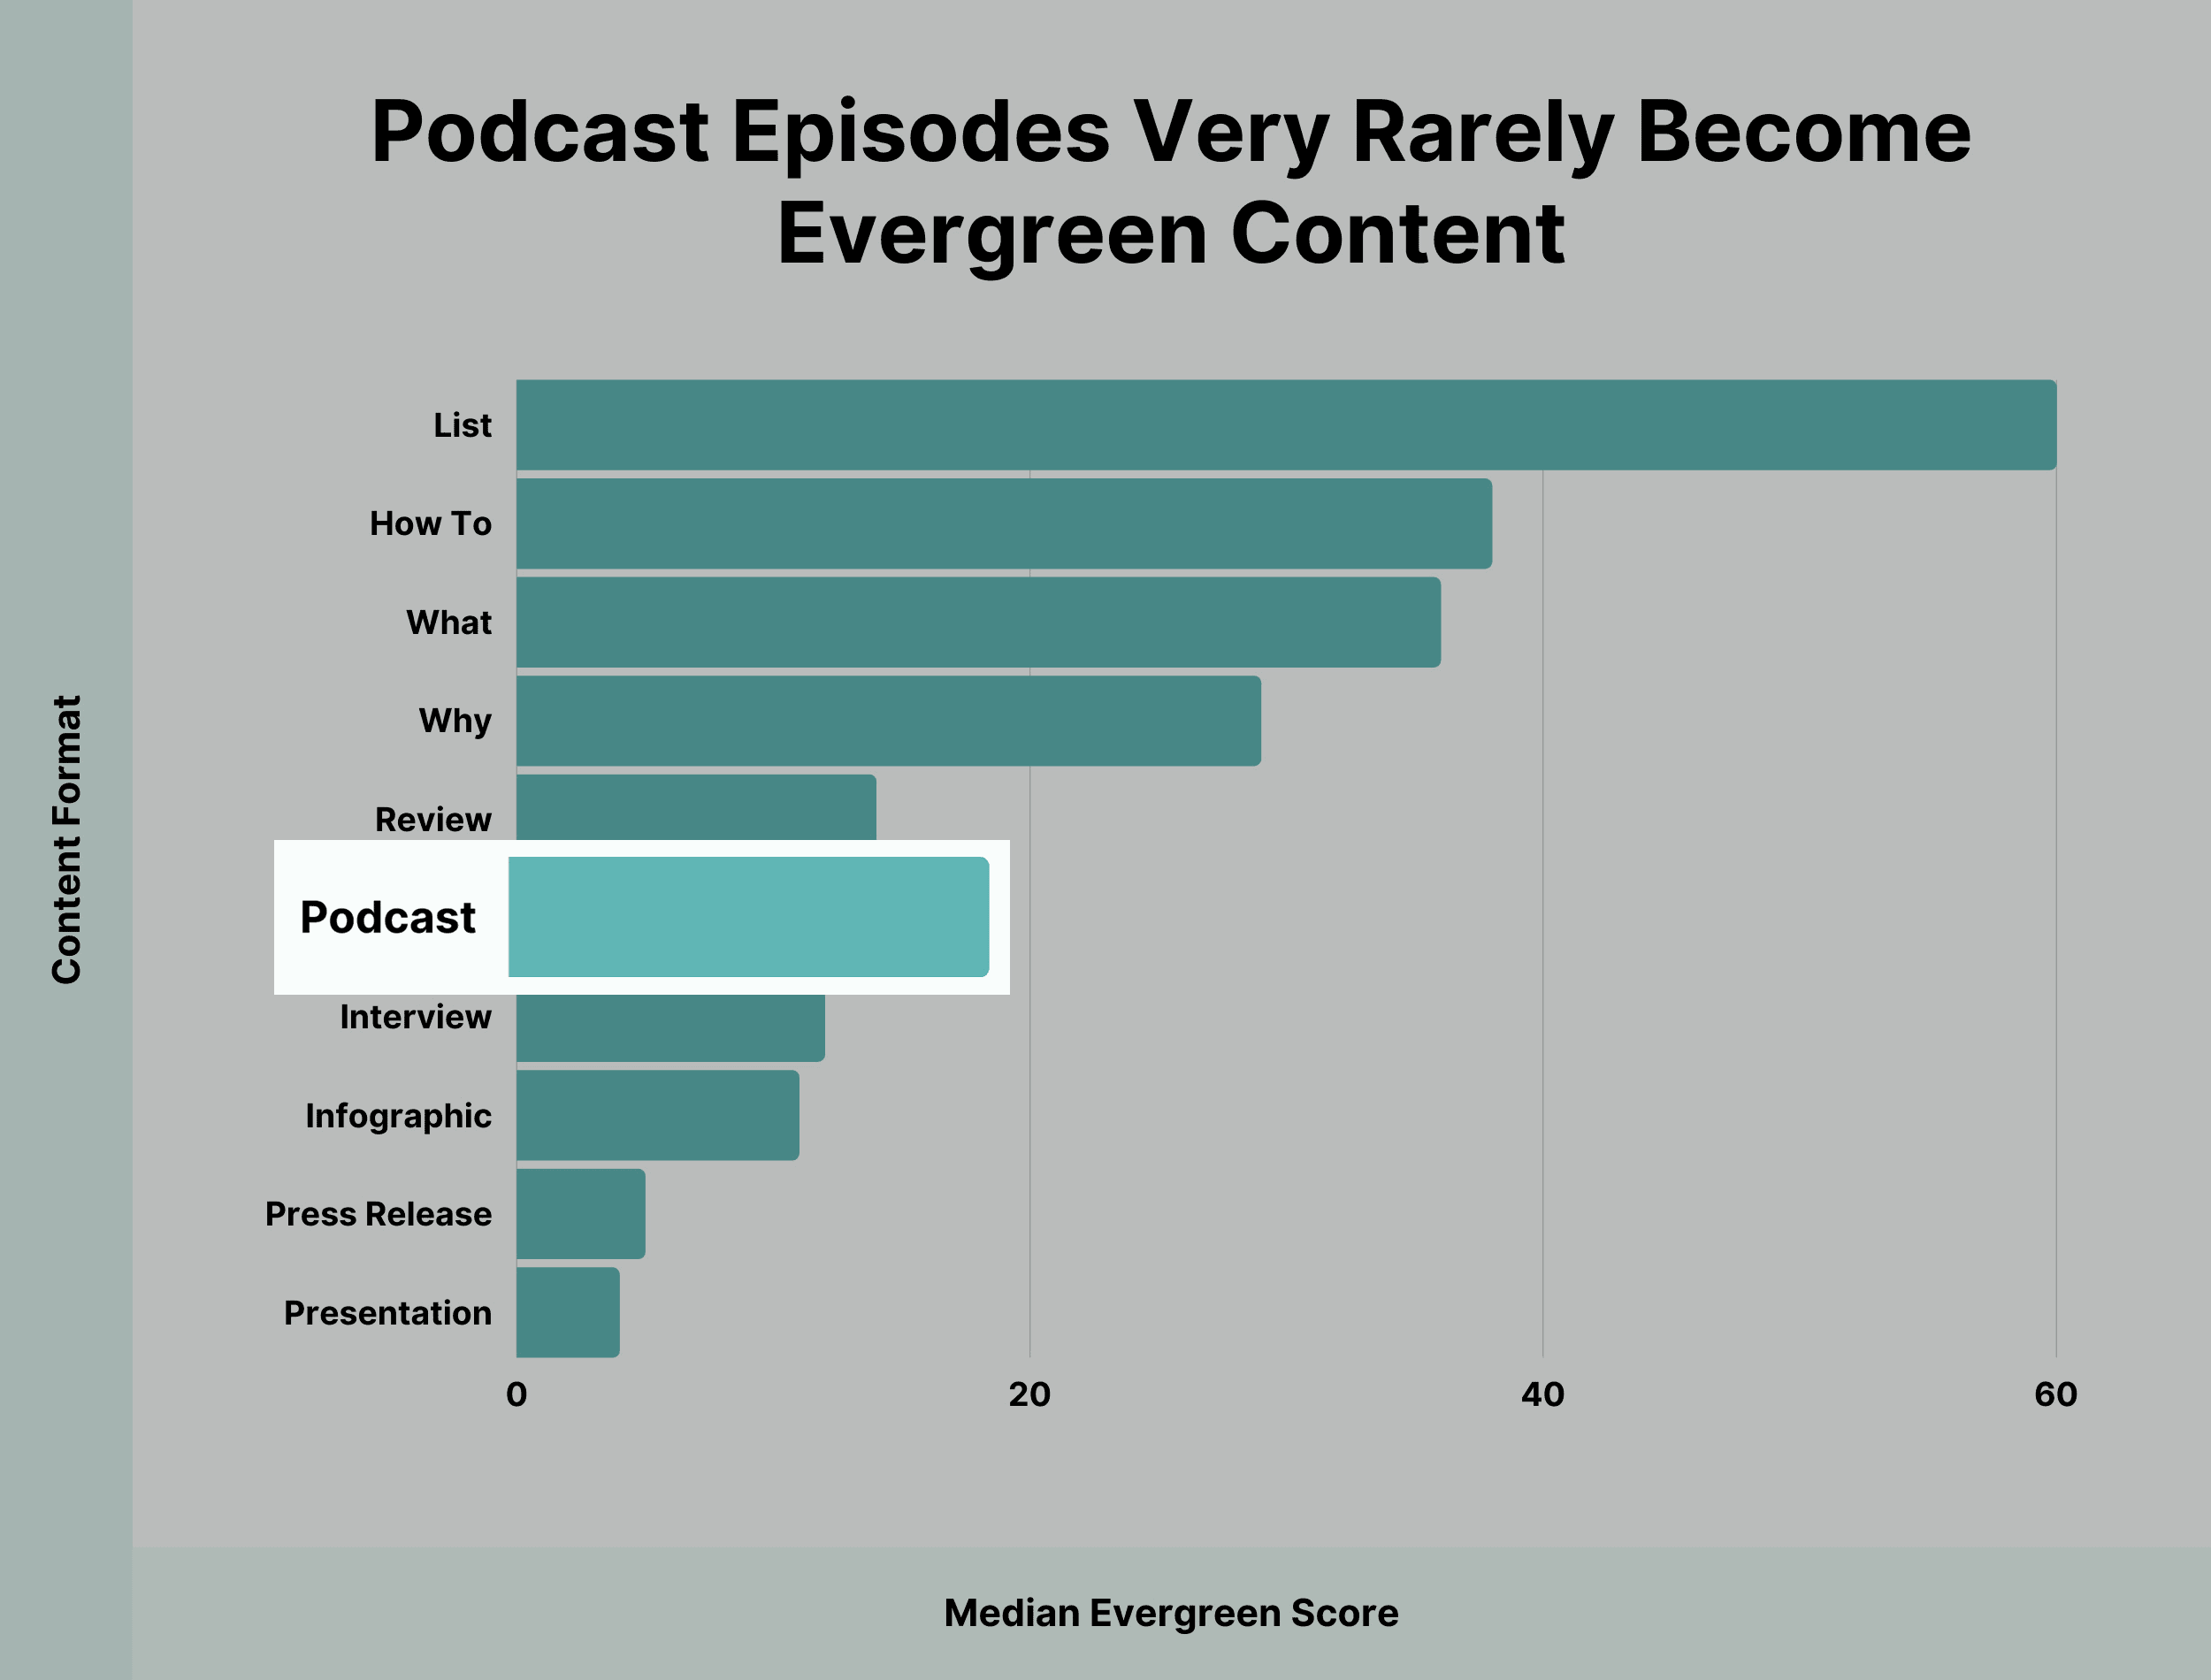 Podcast episodes very rarely become evergreen content